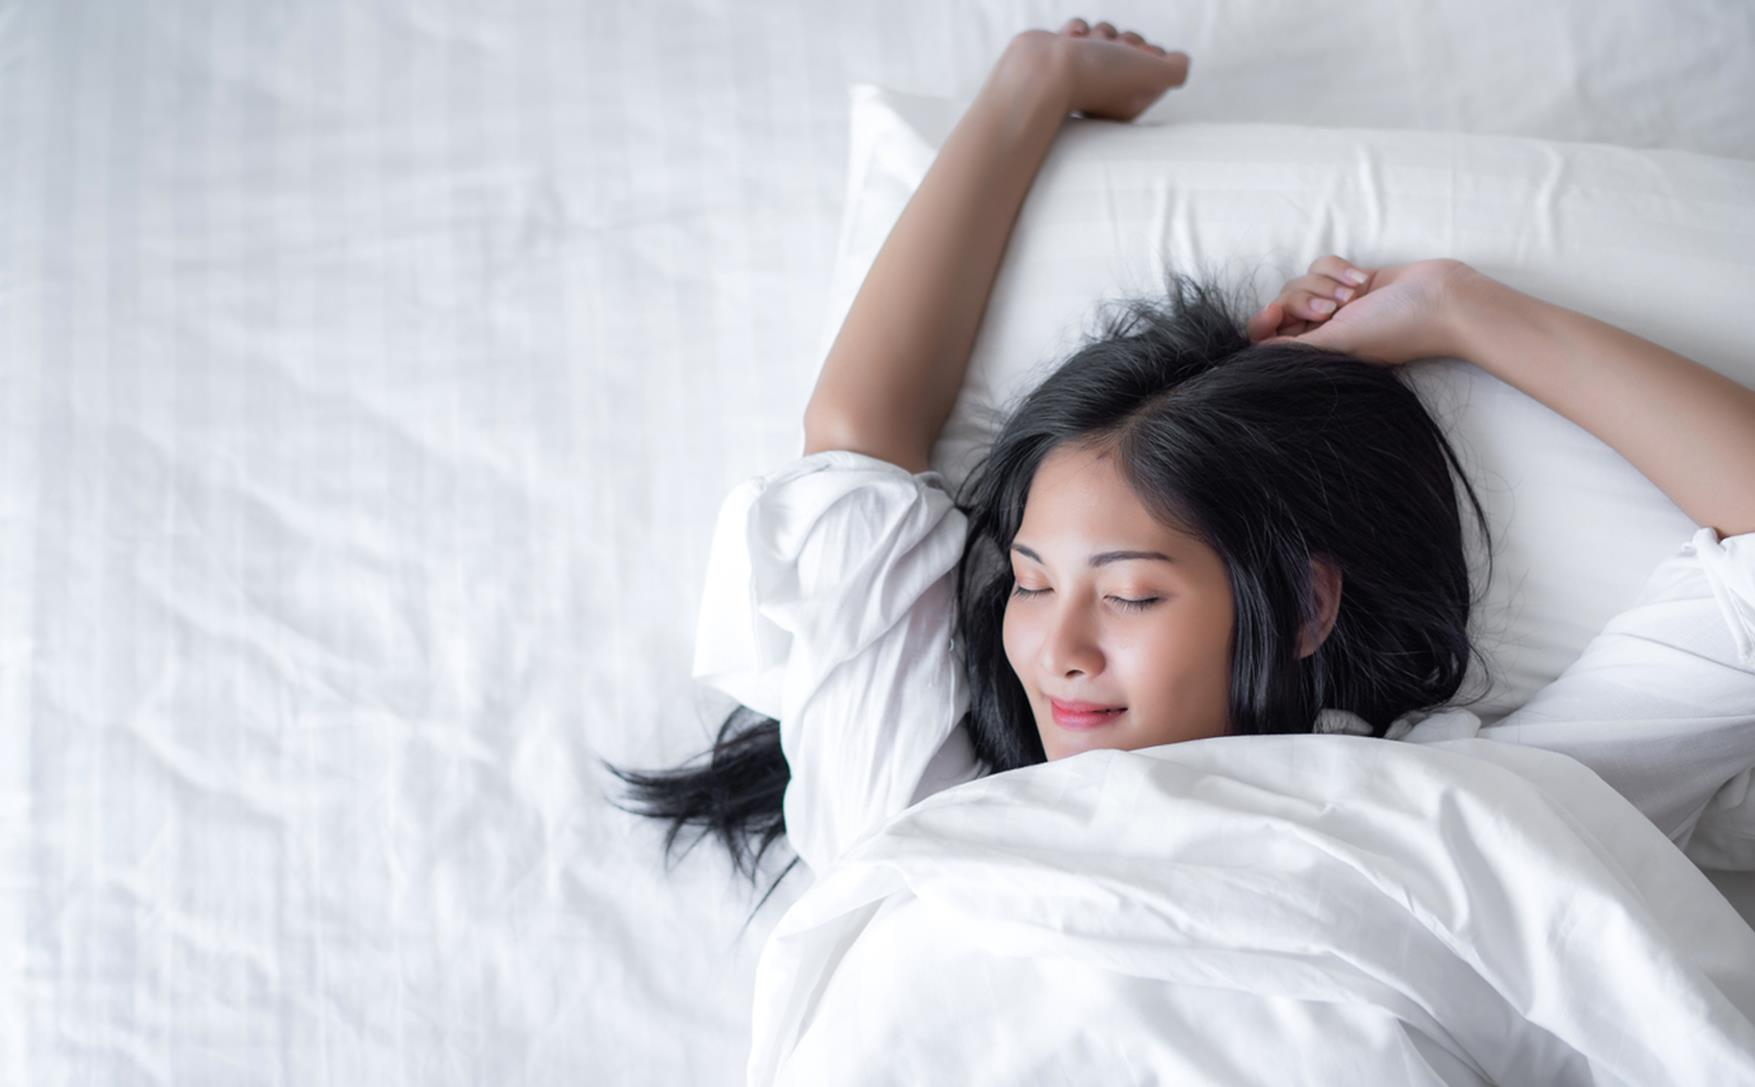 Get Better Sleep with this 3Minute Exercise